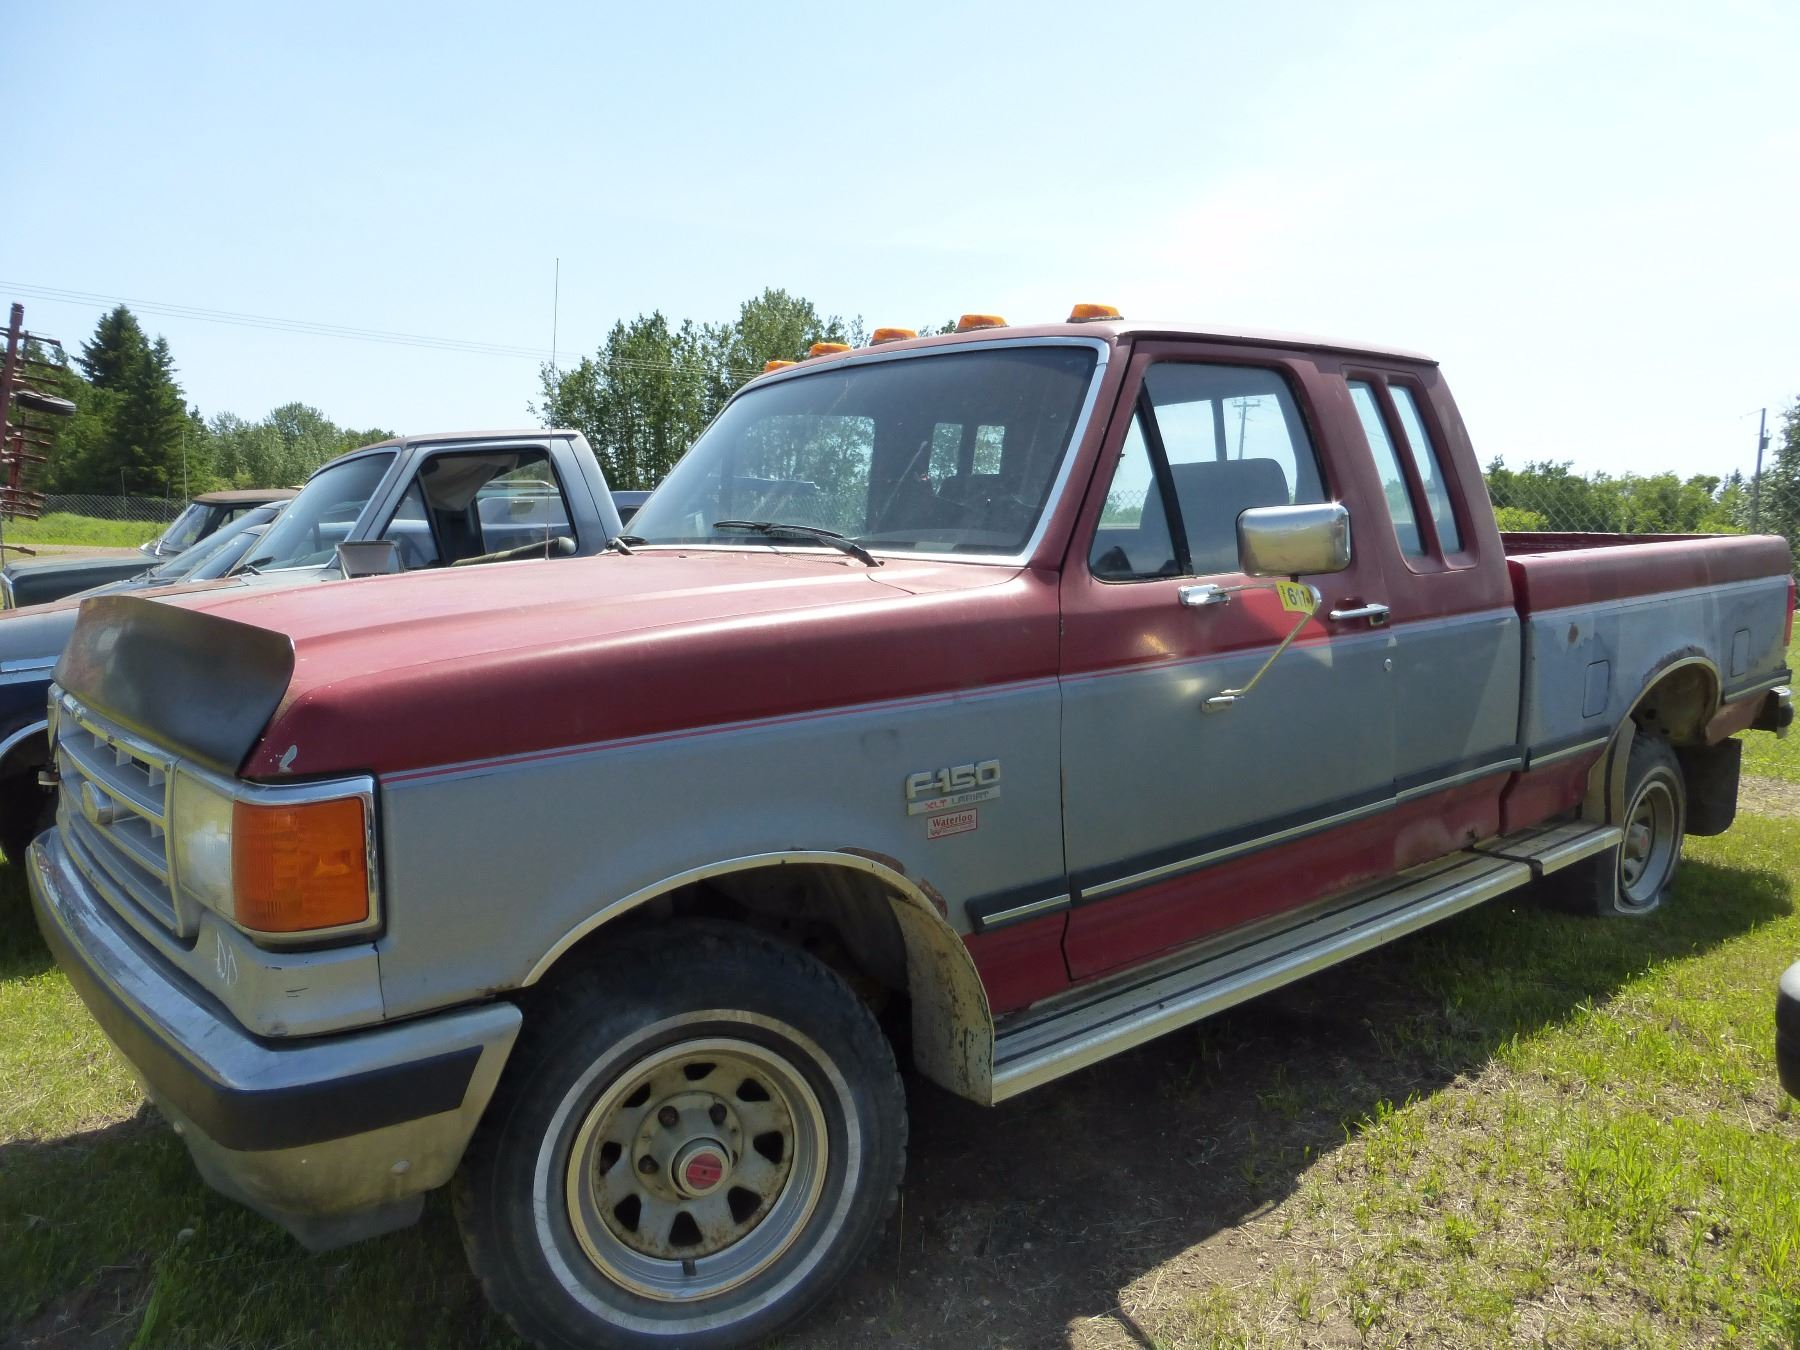 Image 1 1988 ford f150 lariat extended cab truck